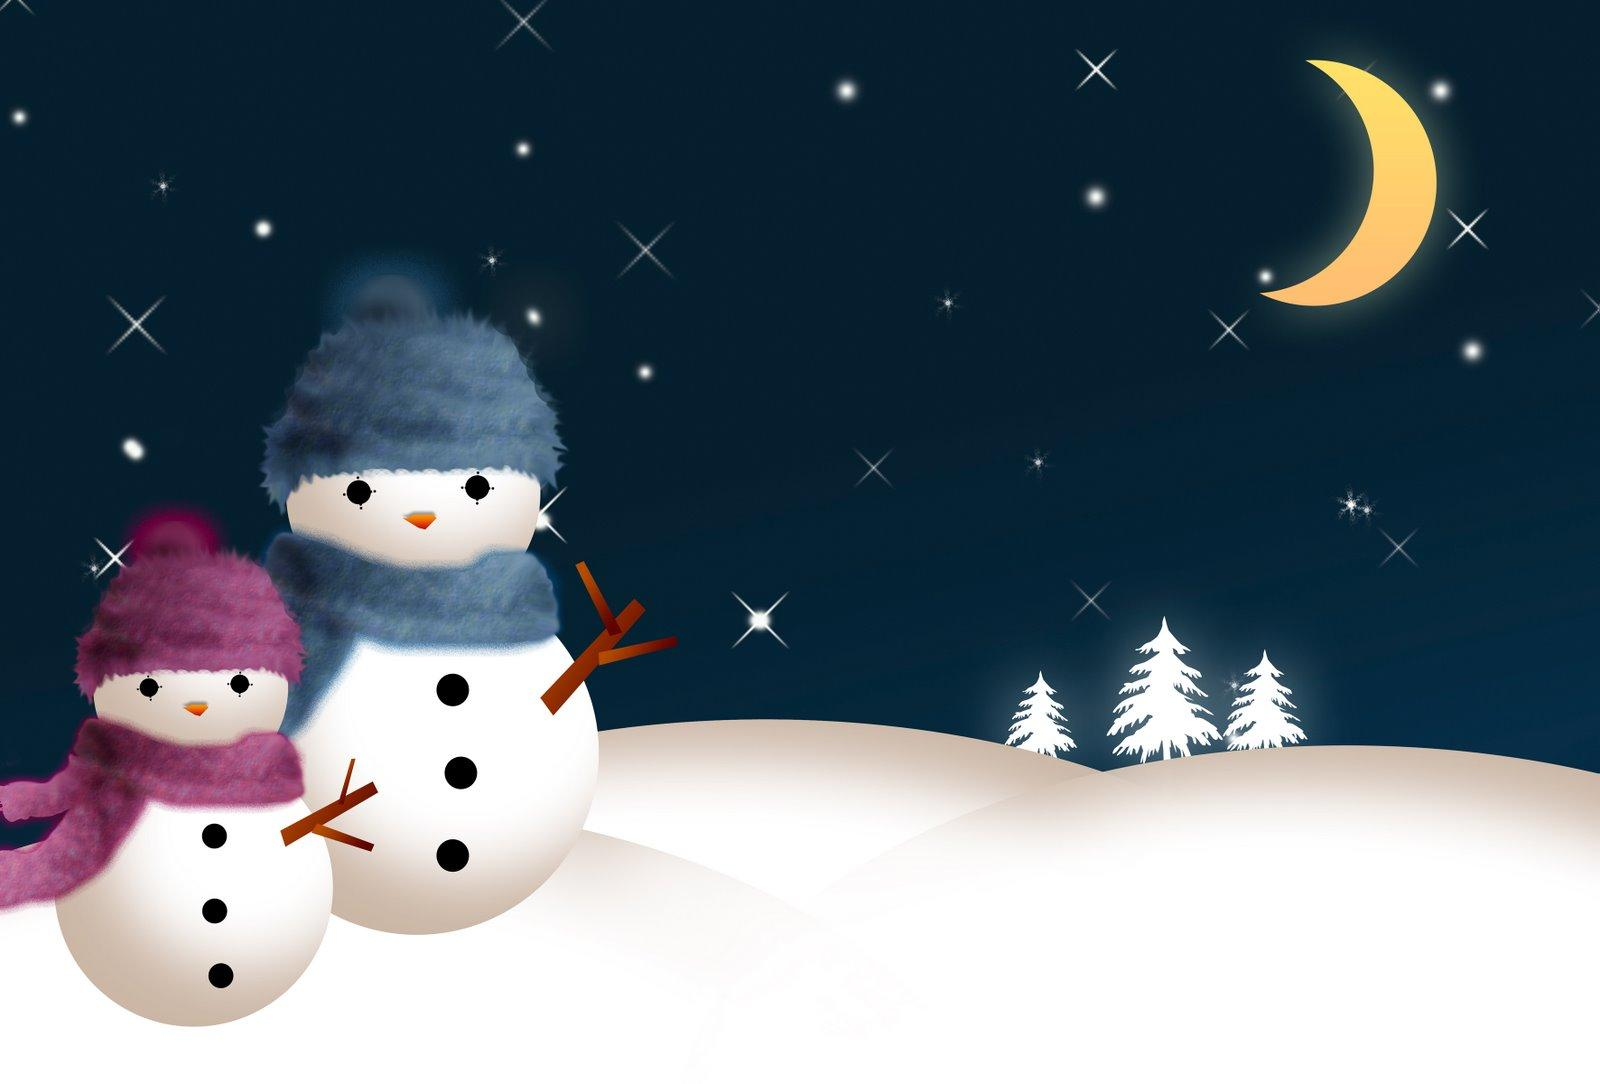 Snowman Background wallpapers WIN10 THEMES 1600x1084